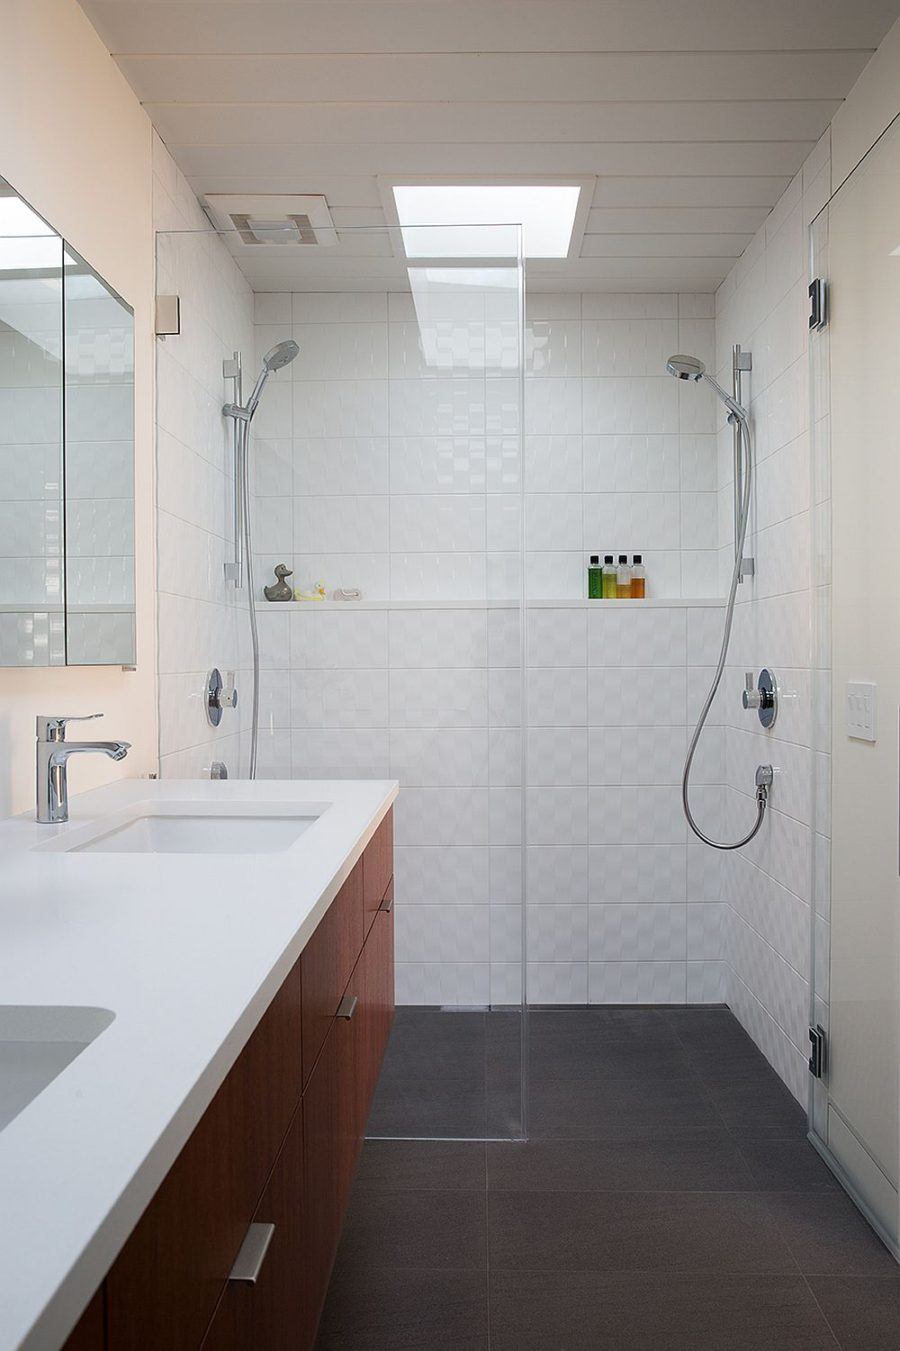 Bathroom is finished with textured white tiles while wooden vanity echoes the main theme